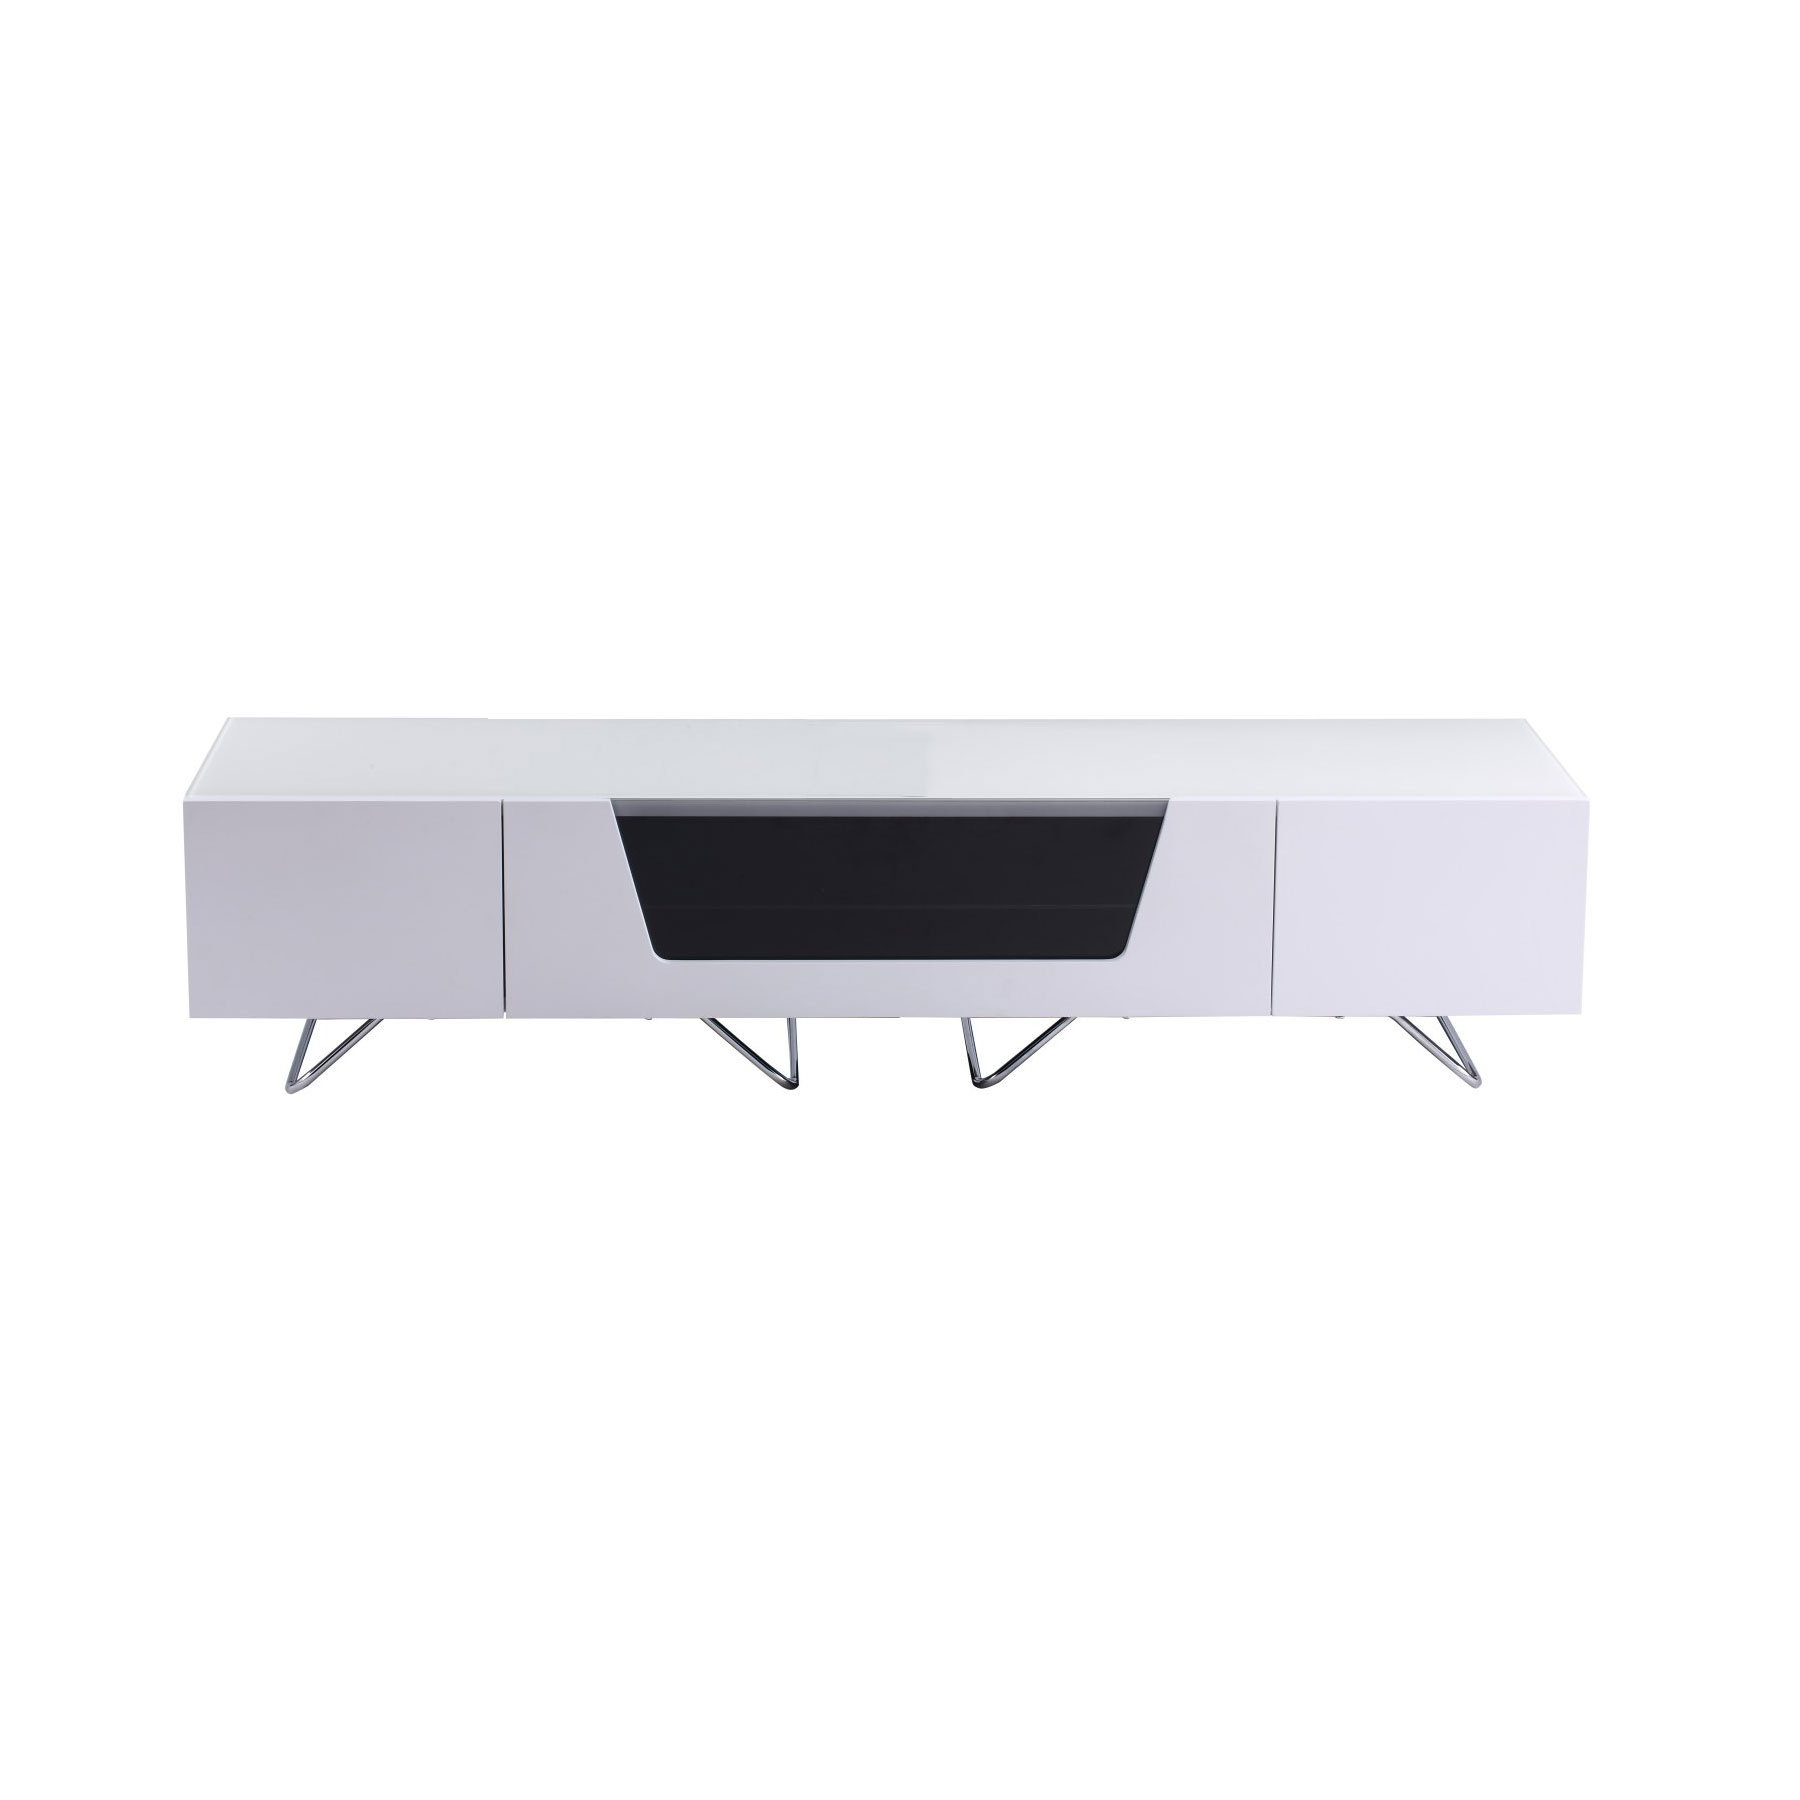 """Alphason Chromium 2 160cm White Tv Stand For Up To 75"""" Tvs With Regard To Chromium Tv Stands (View 11 of 20)"""